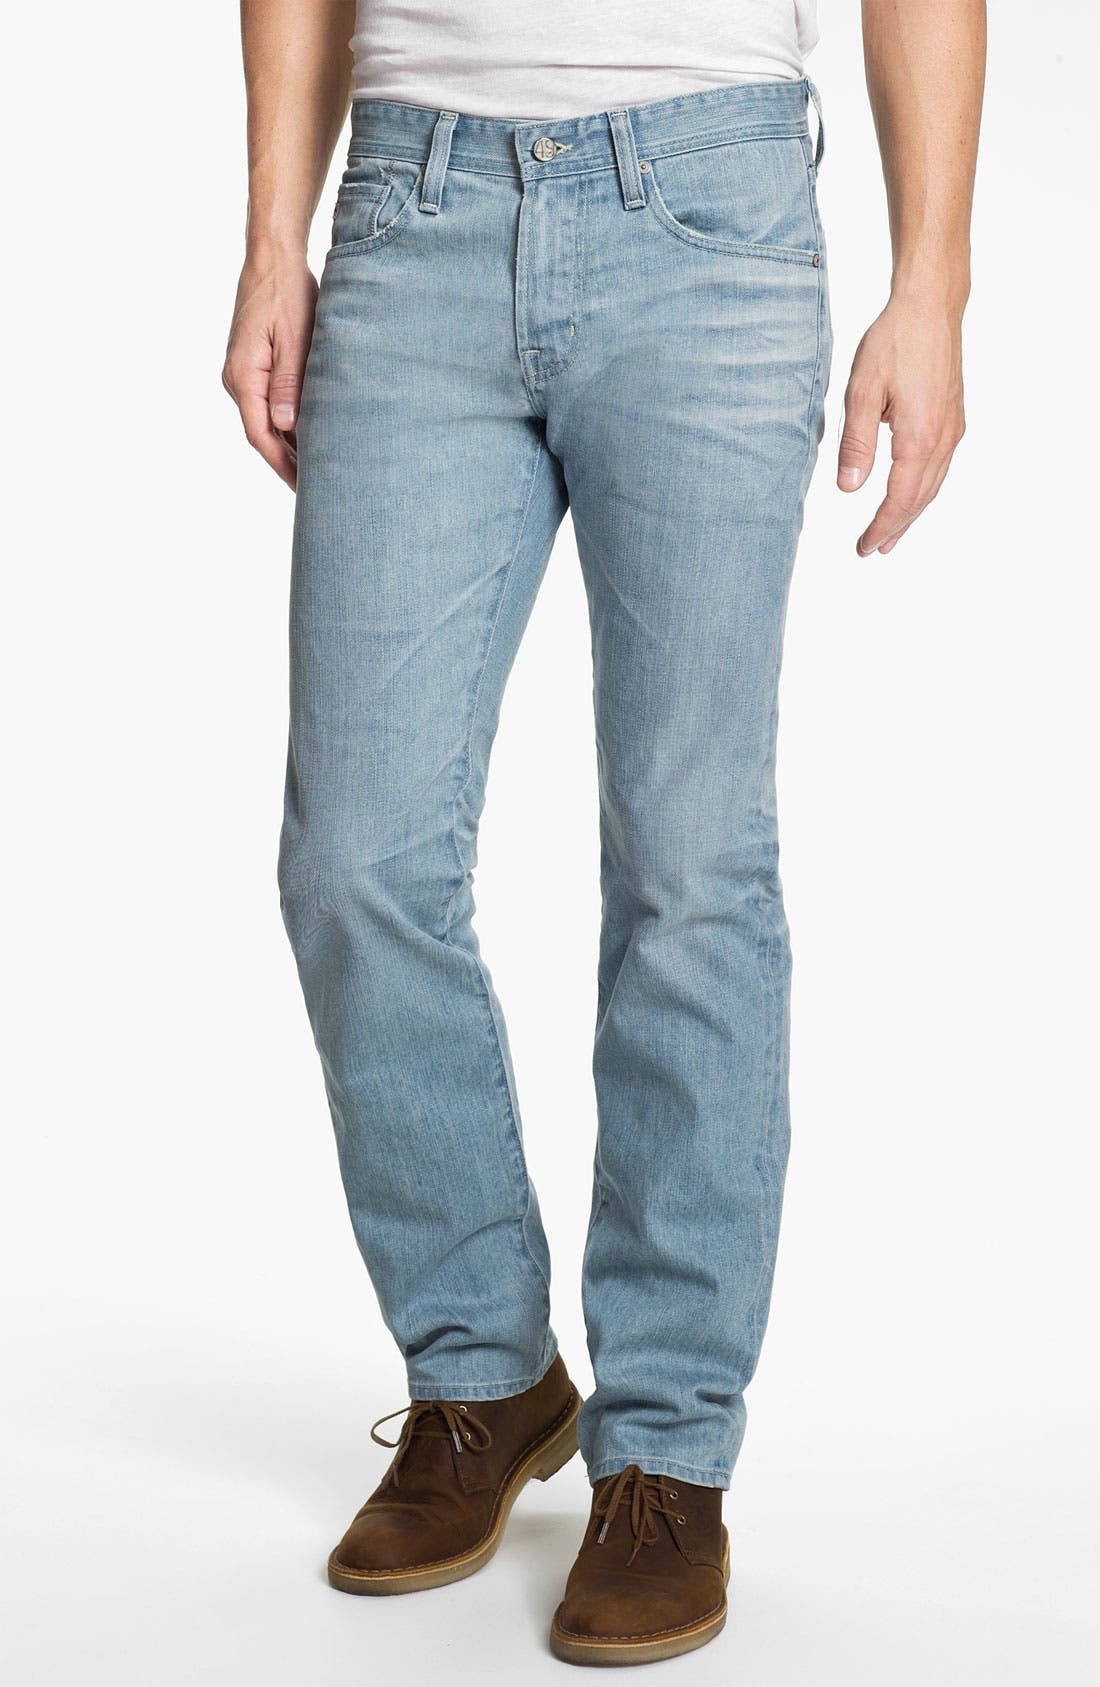 Alternate Image 1 Selected - AG 'Matchbox' Slim Fit Jeans (24 Year Fade)